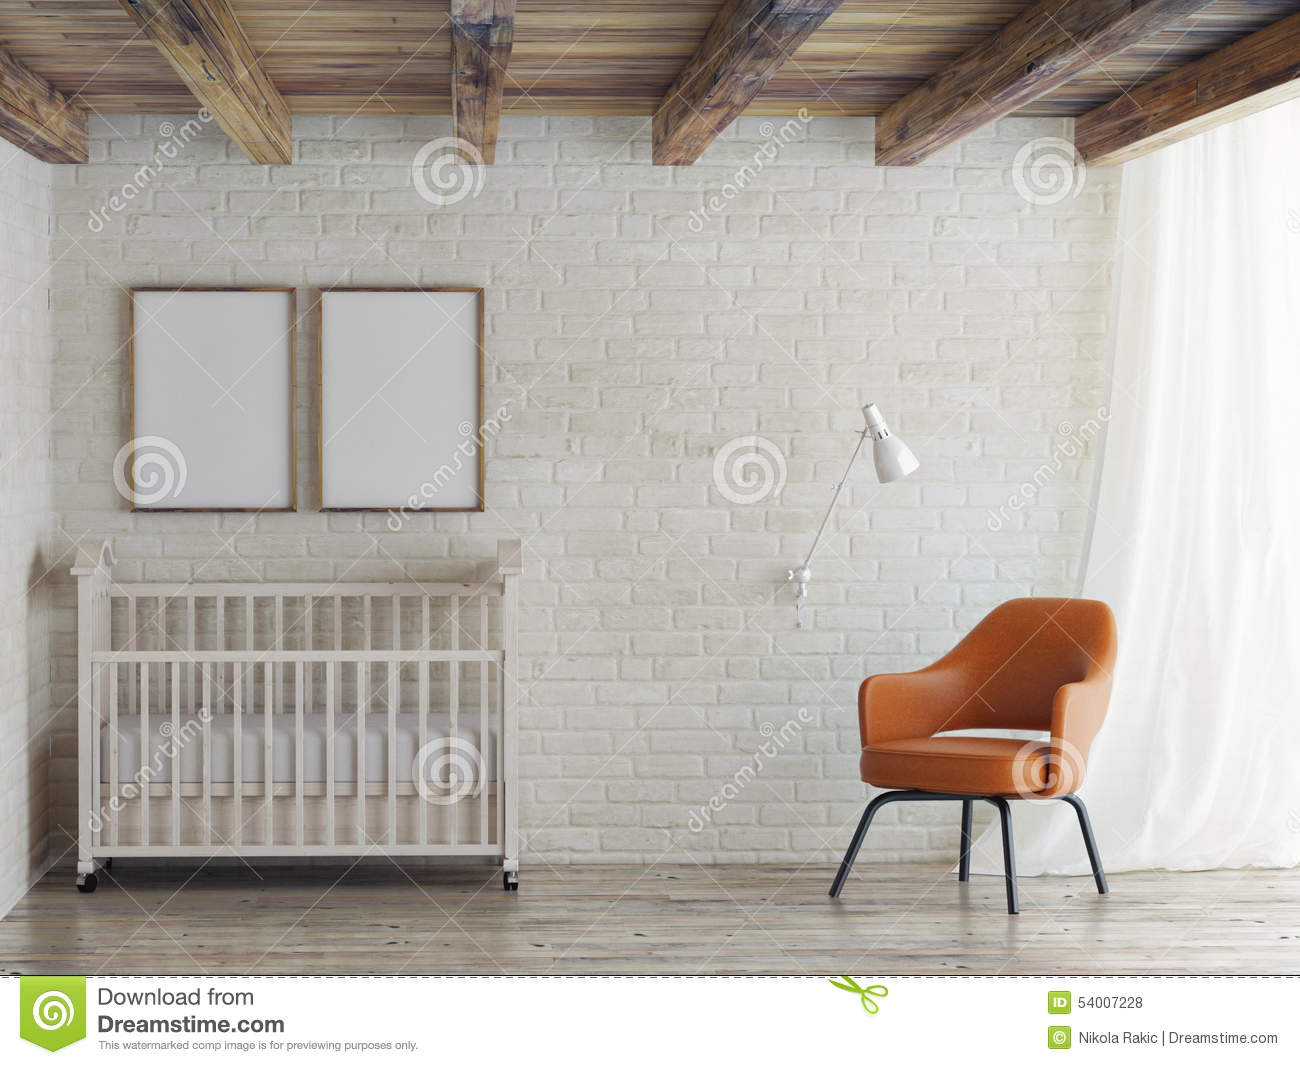 Baby Room Mock Up Poster On Brick Wall 3d Illustration